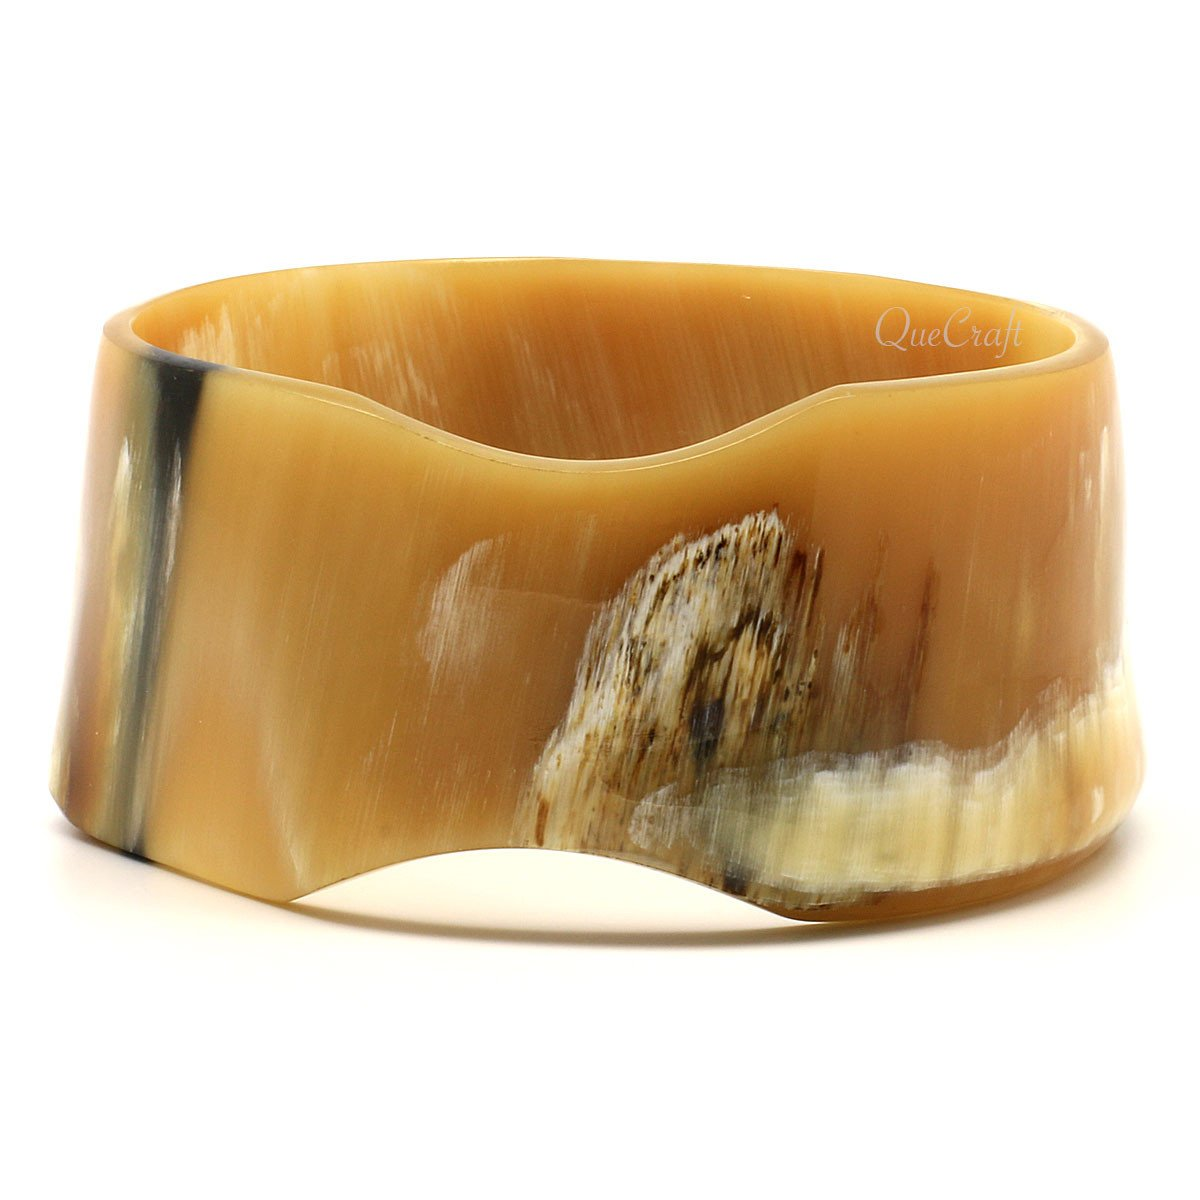 Horn Bangle Bracelet #8988 - HORN.JEWELRY by QueCraft